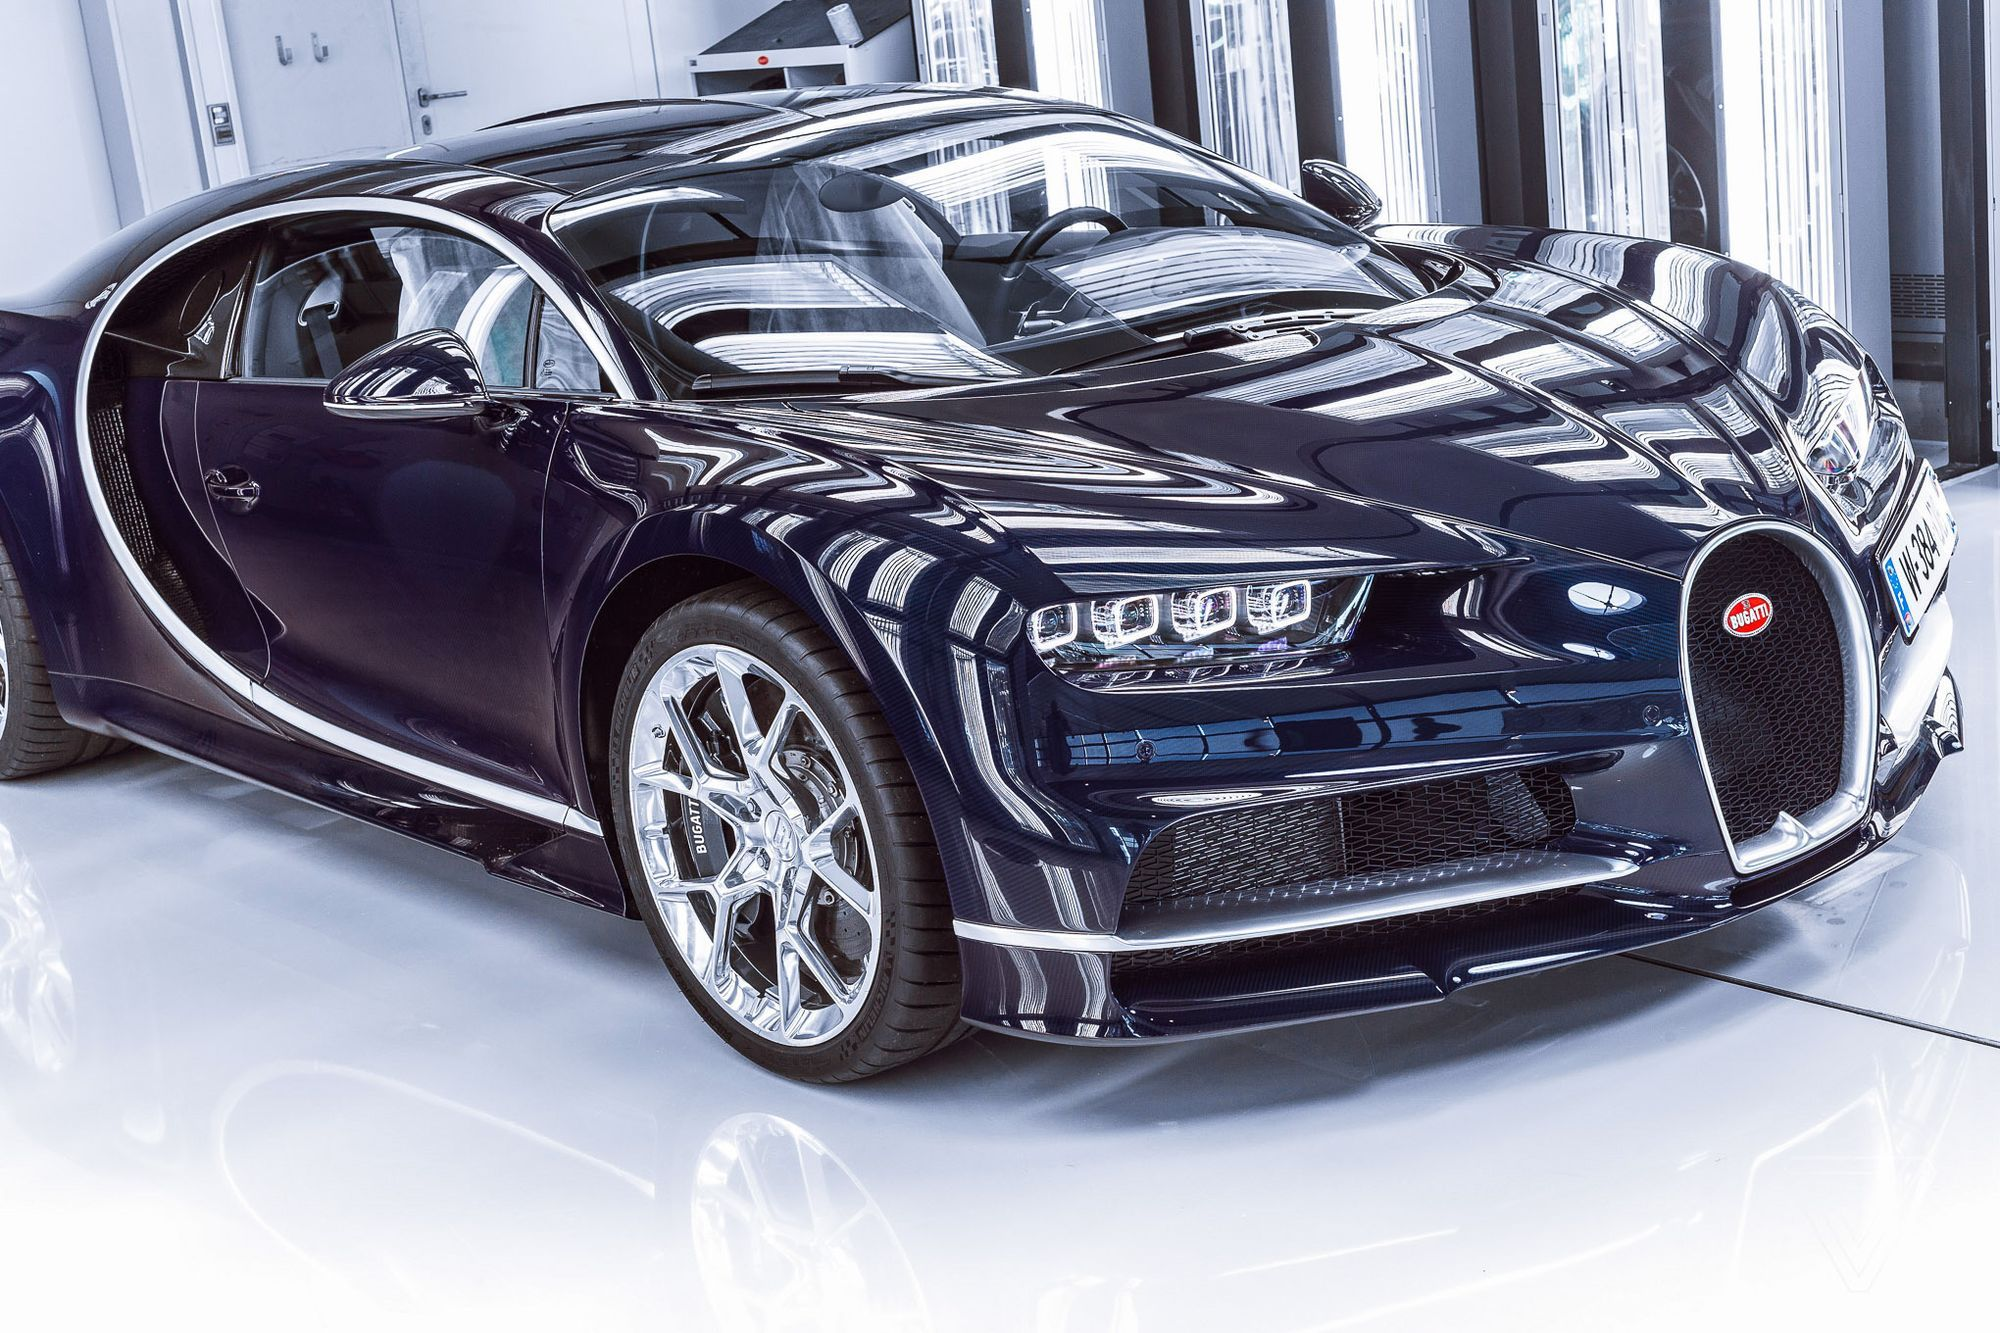 inside the bugatti factory: an exclusive look at the making of the